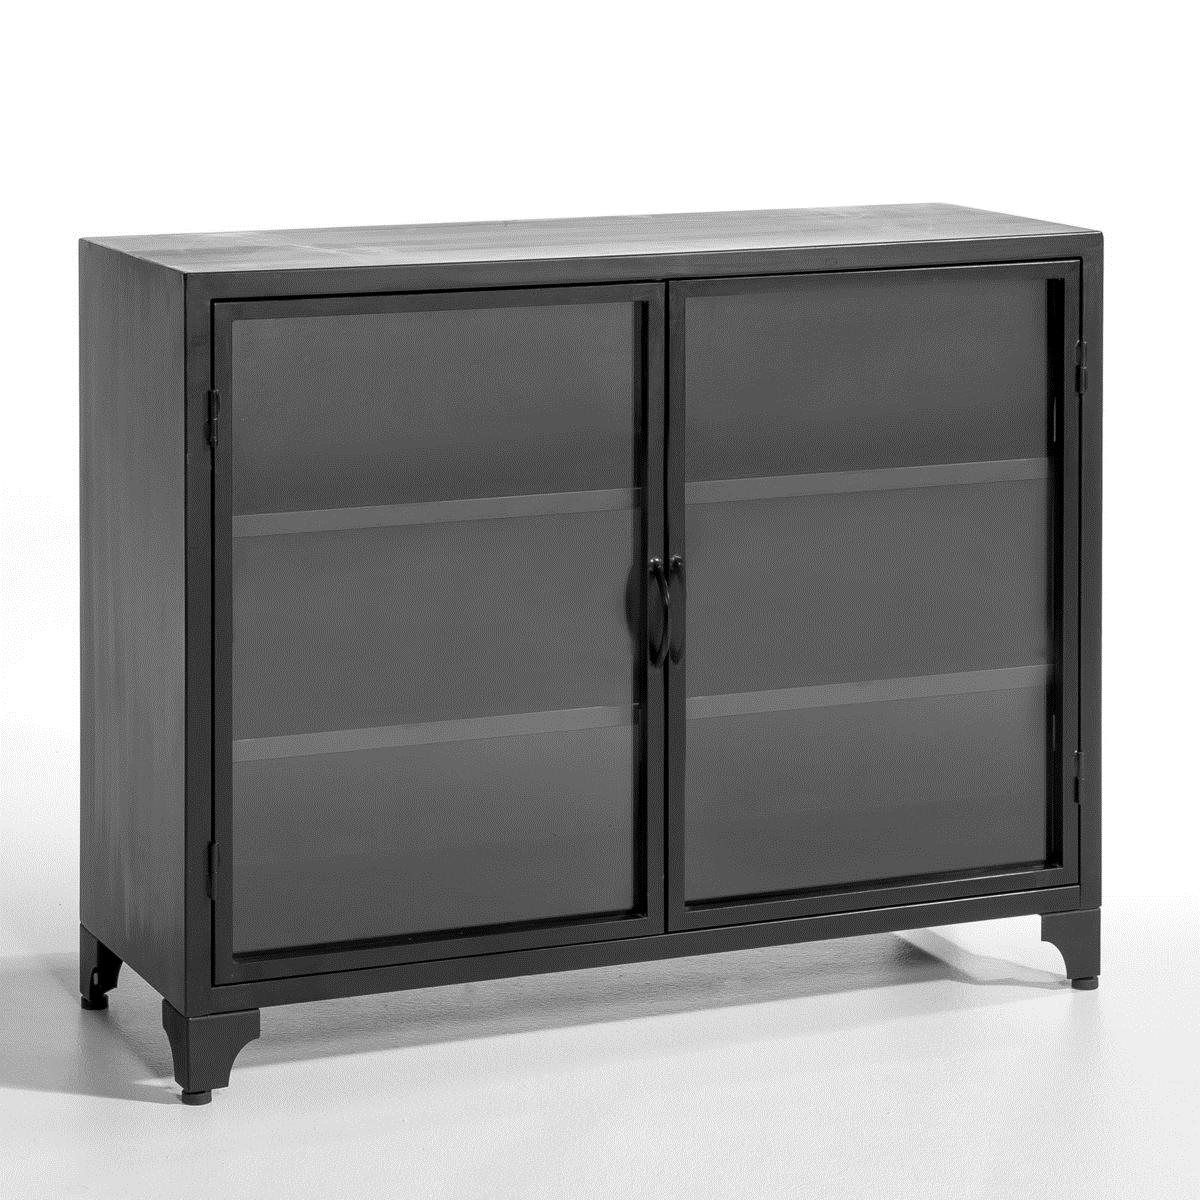 meubles am pm achat meuble bas kargo m tal portes vitr es am pm prix promo am pm la redoute 535. Black Bedroom Furniture Sets. Home Design Ideas